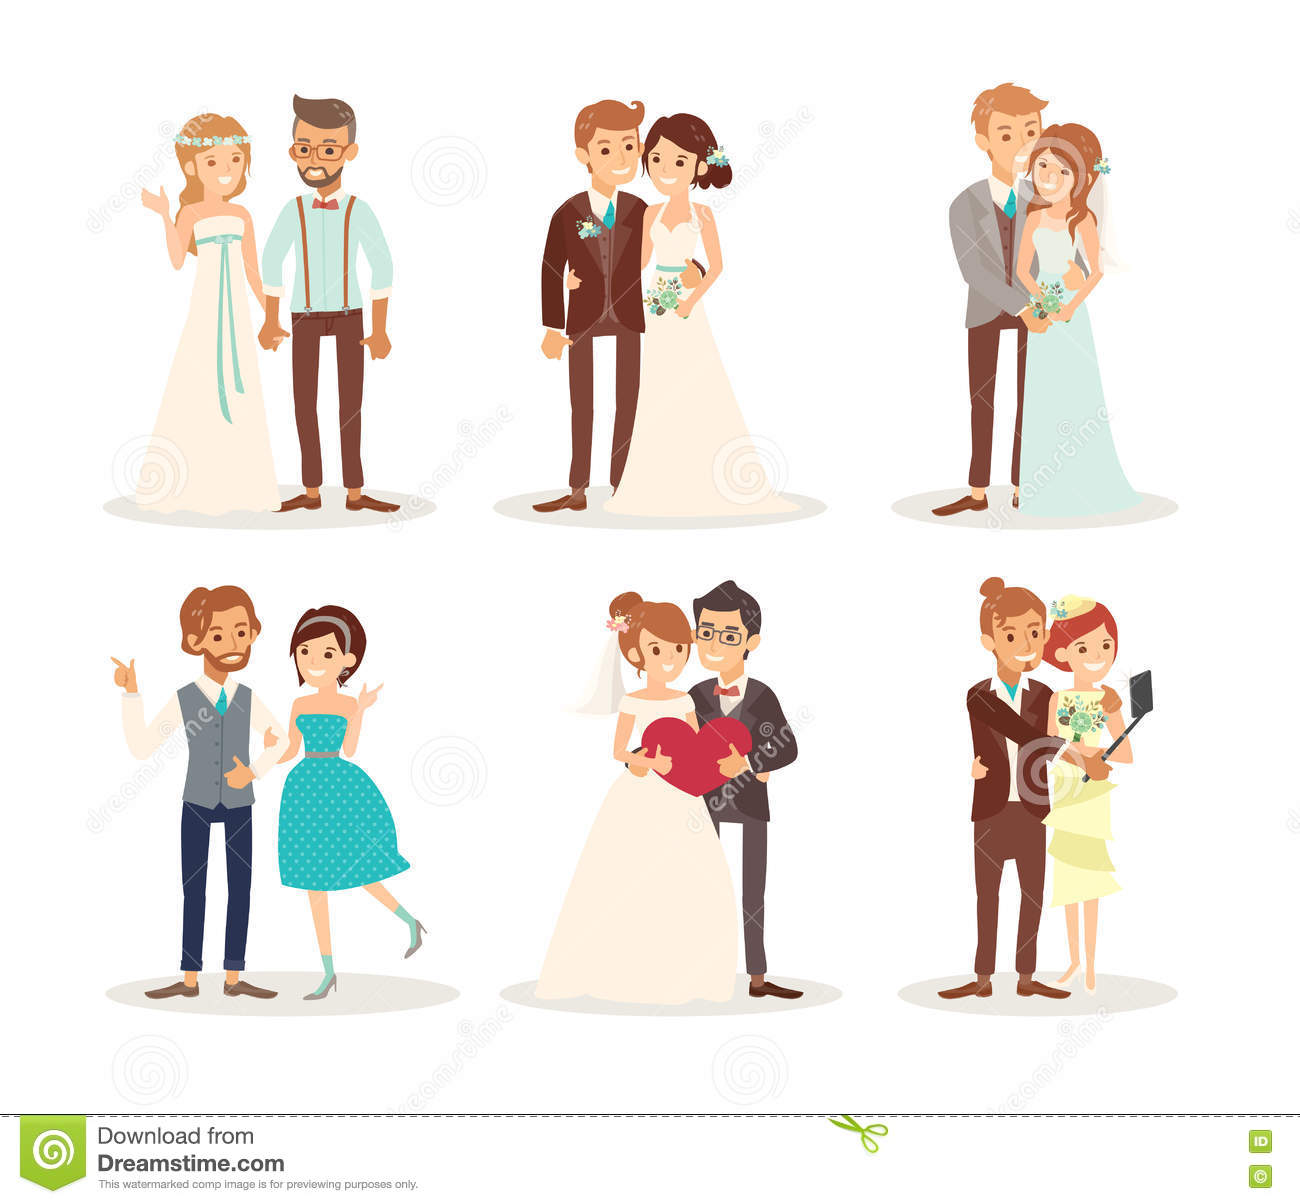 Cute Wedding Couple Bride And Groom Cartoon Stock Vector.